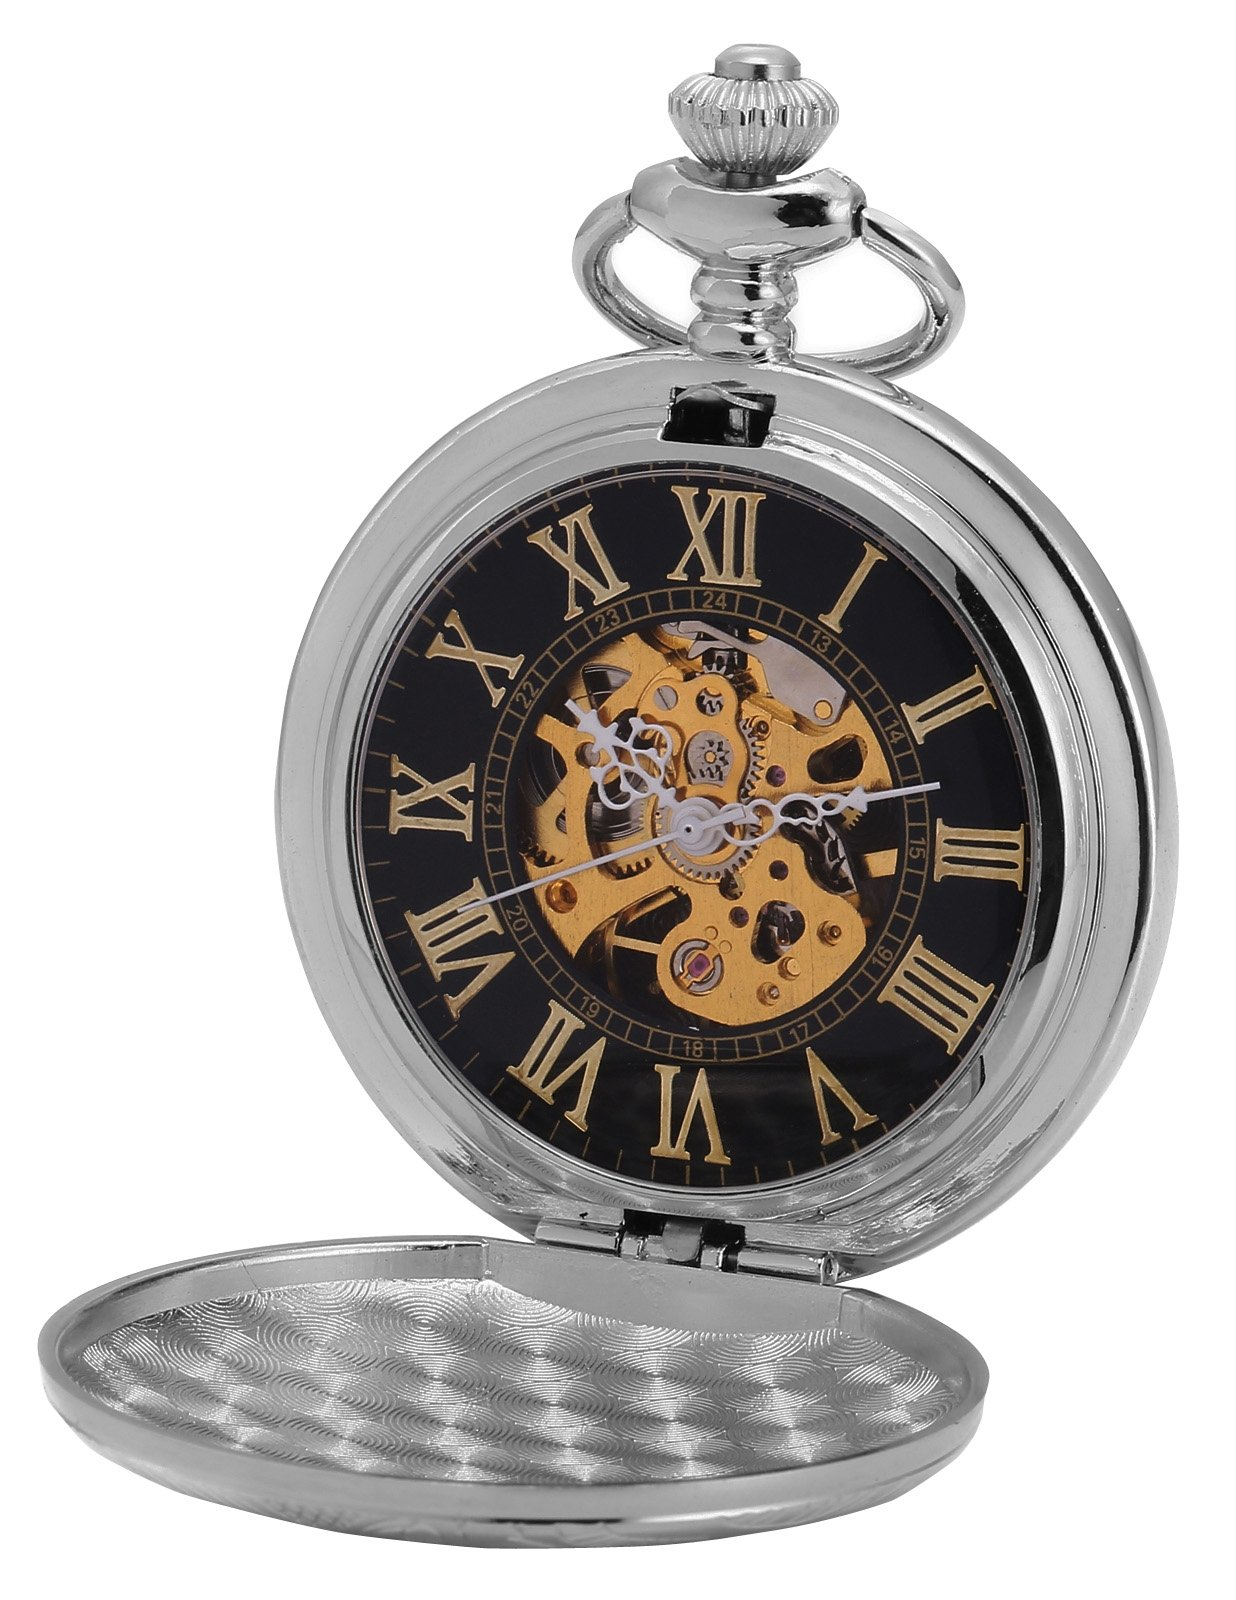 AMPM24 New Classic Skeleton Case Men's Mechanical Pocket Watch WPK212